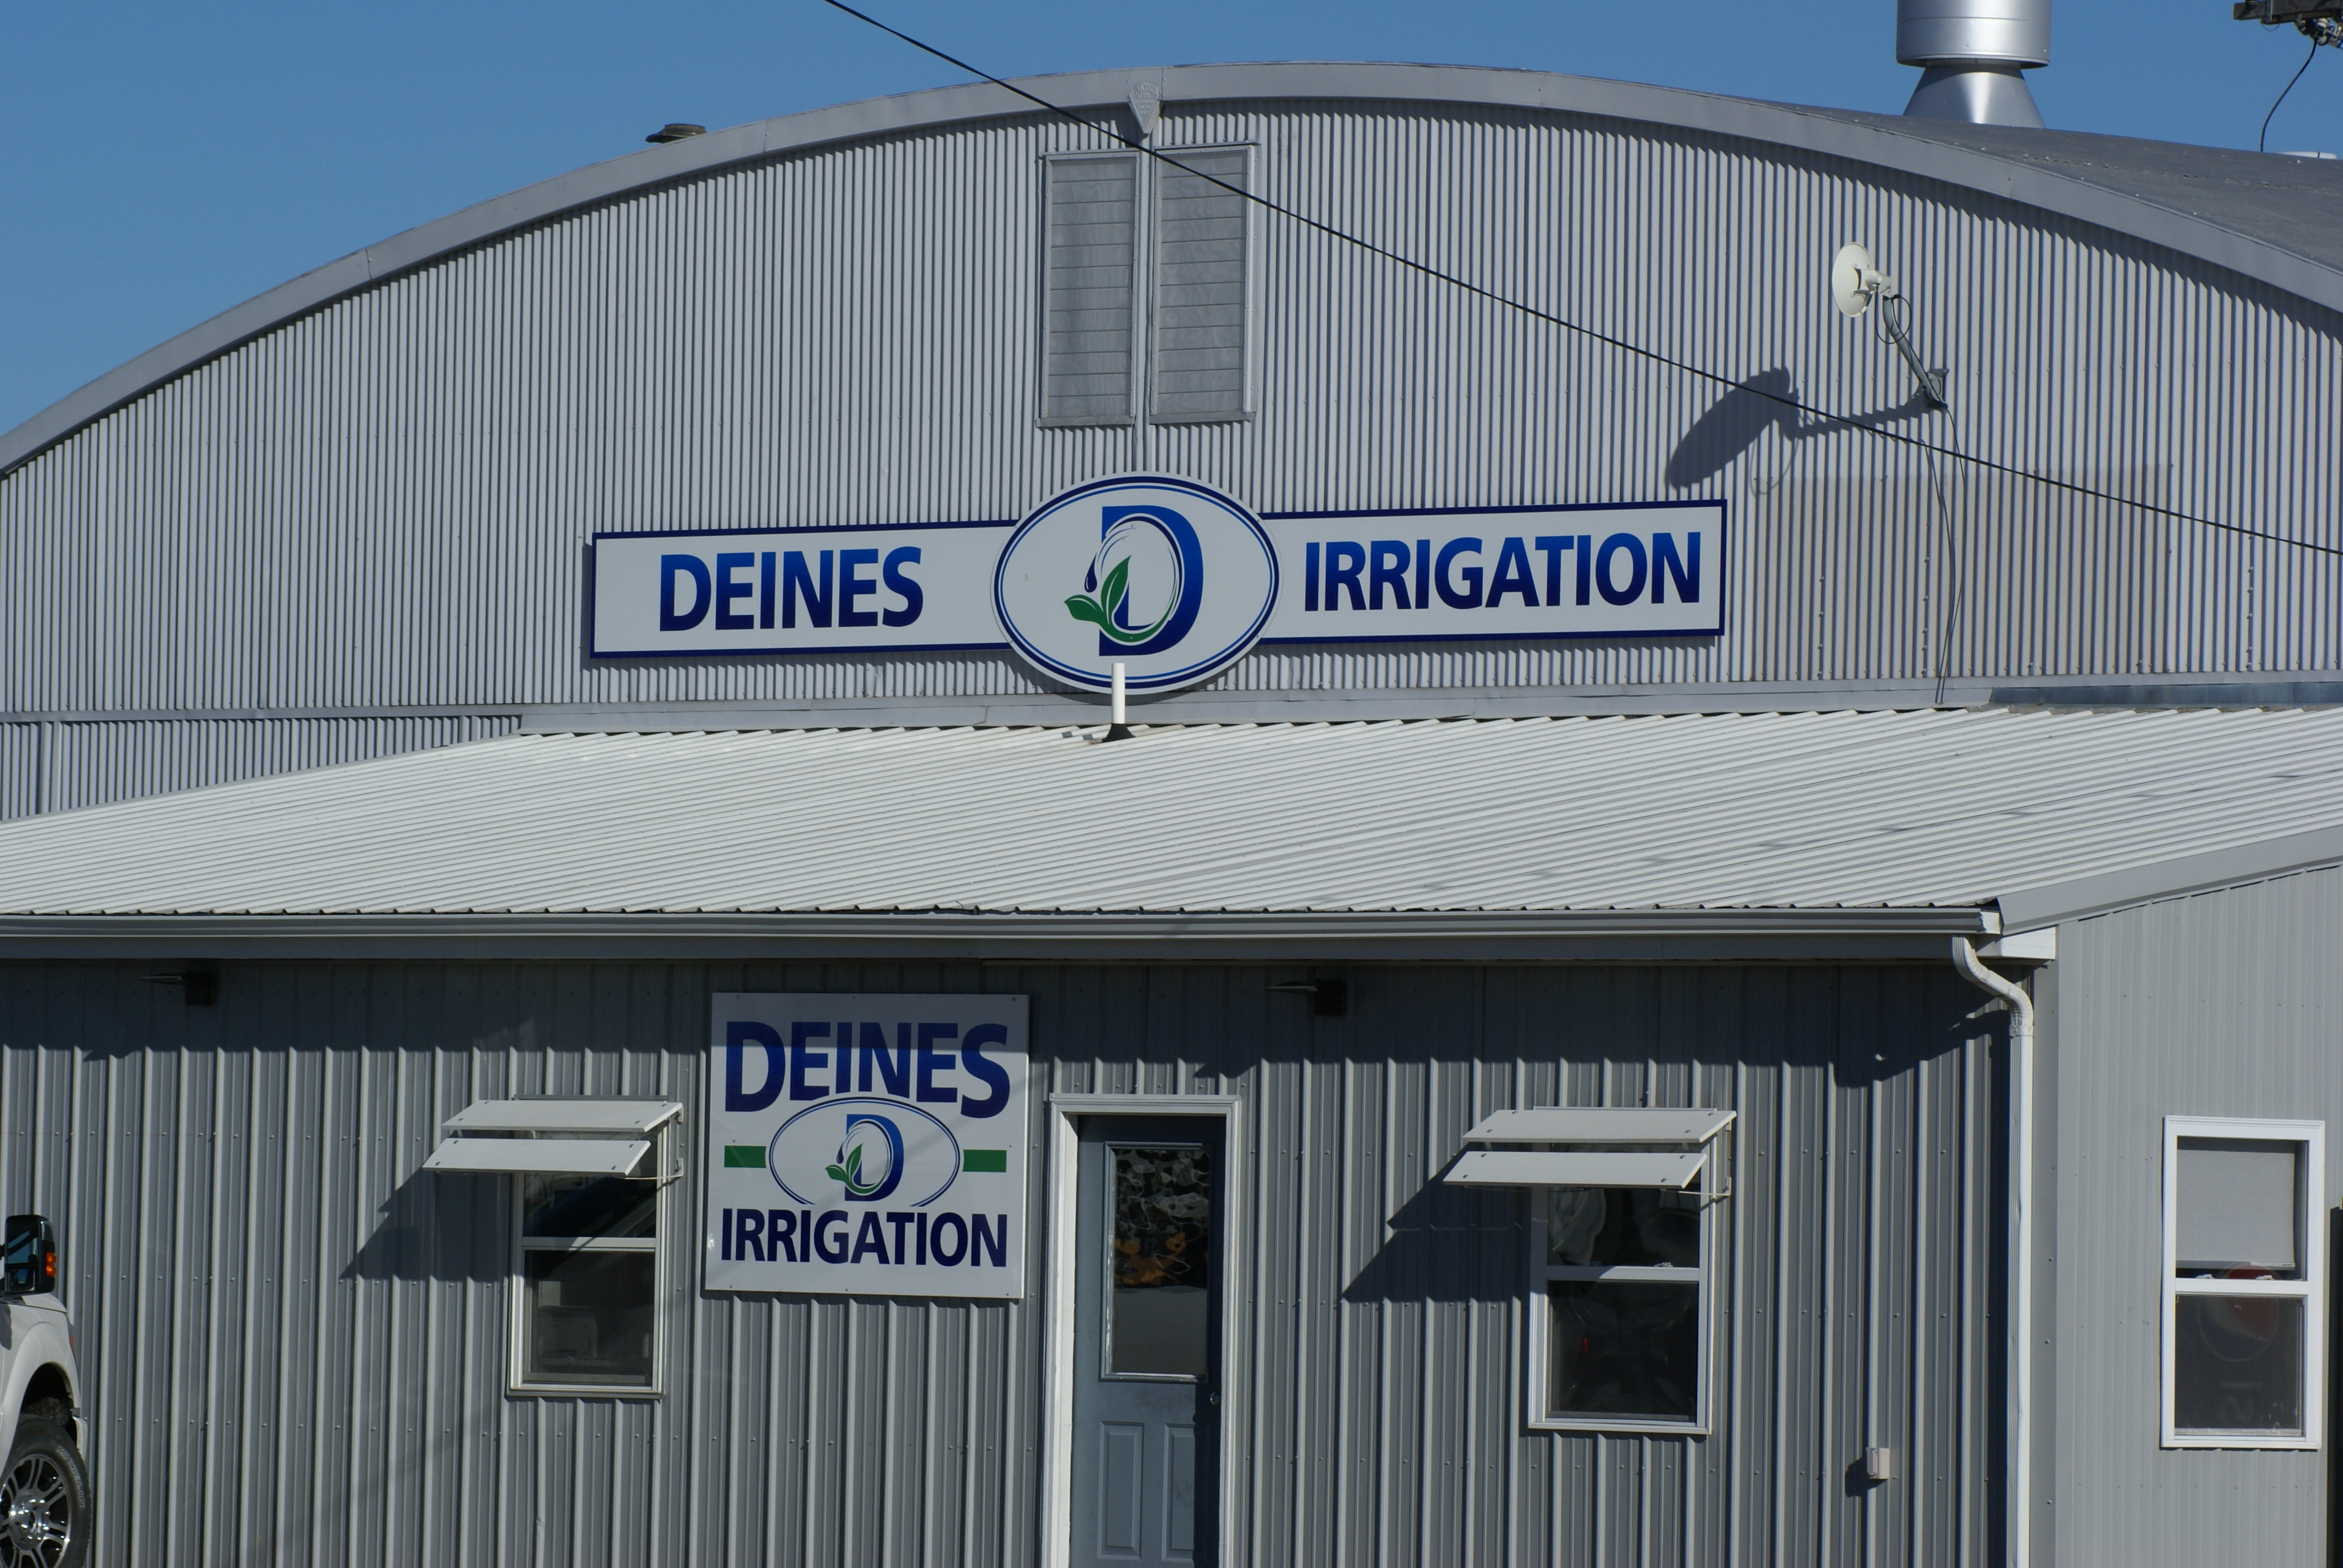 Deines Irrigation